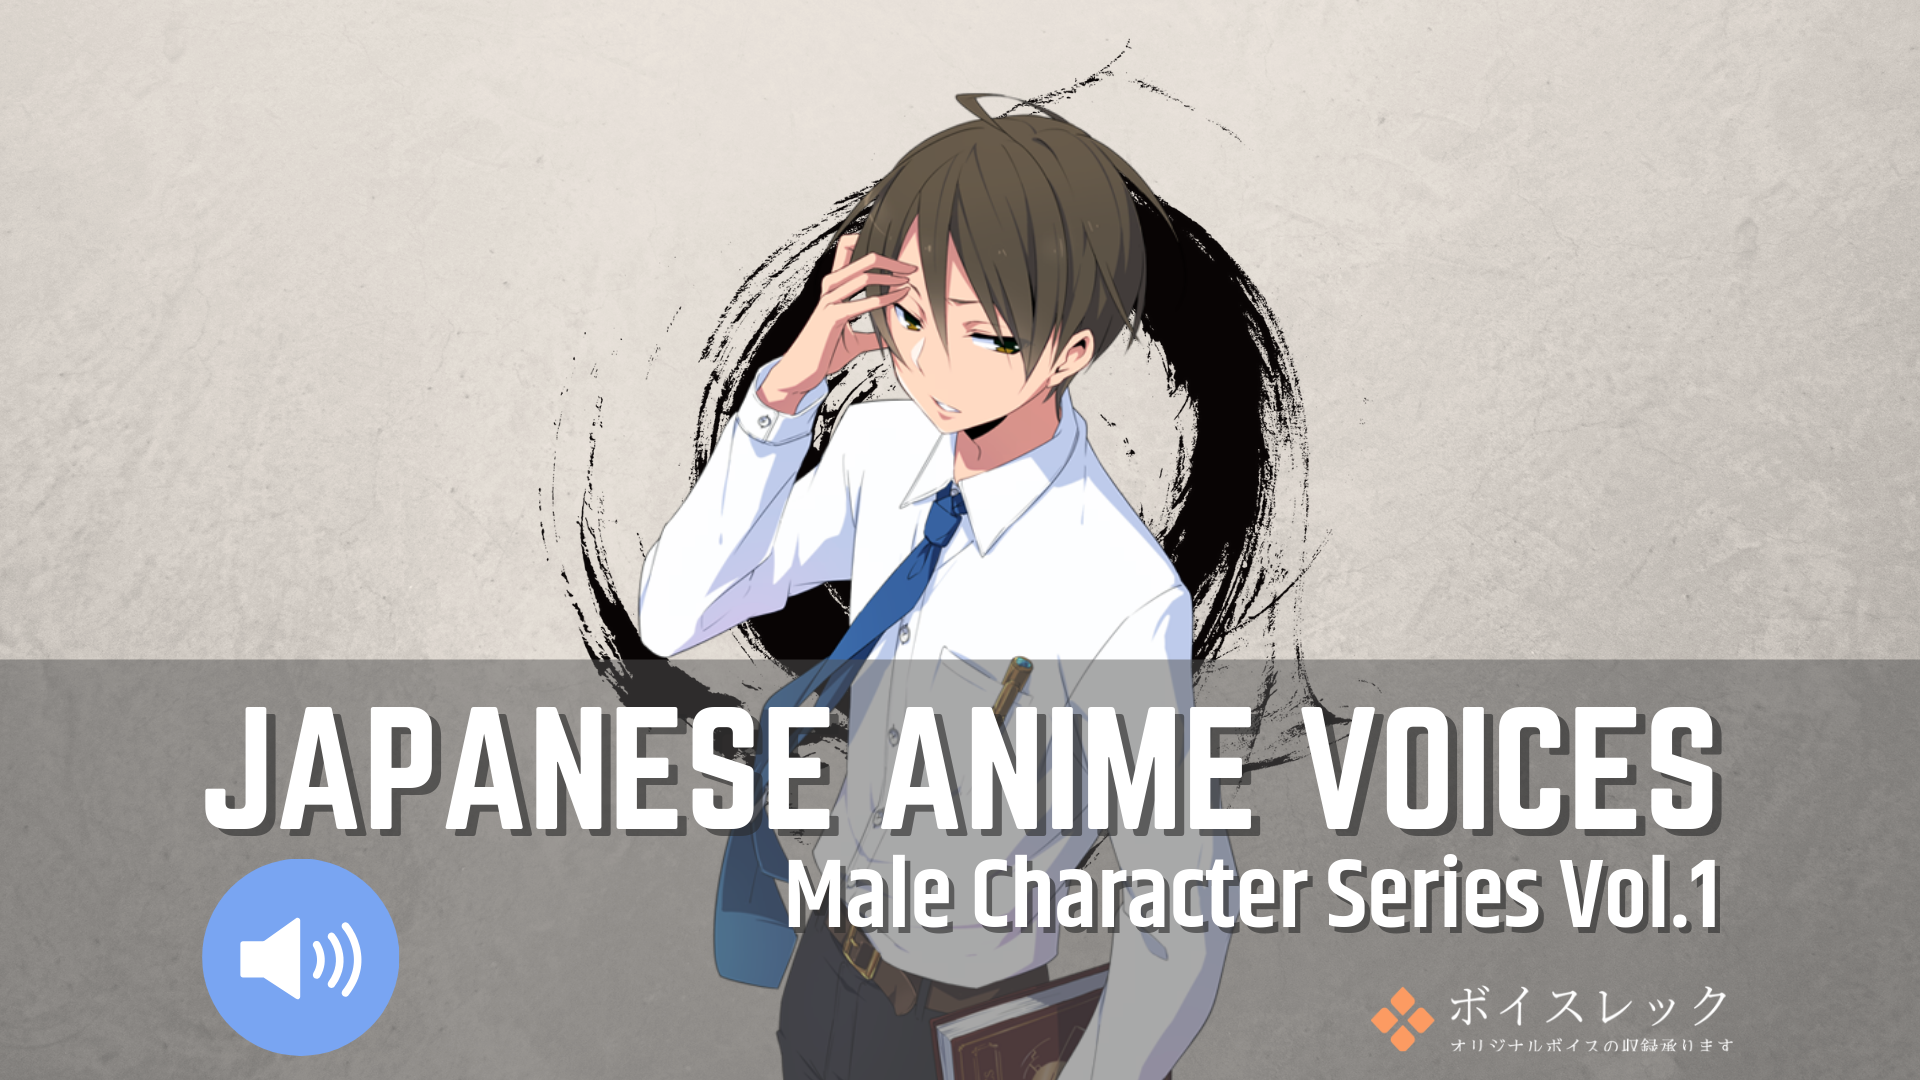 Japanese Anime Voices Male Character Series Vol 1 by